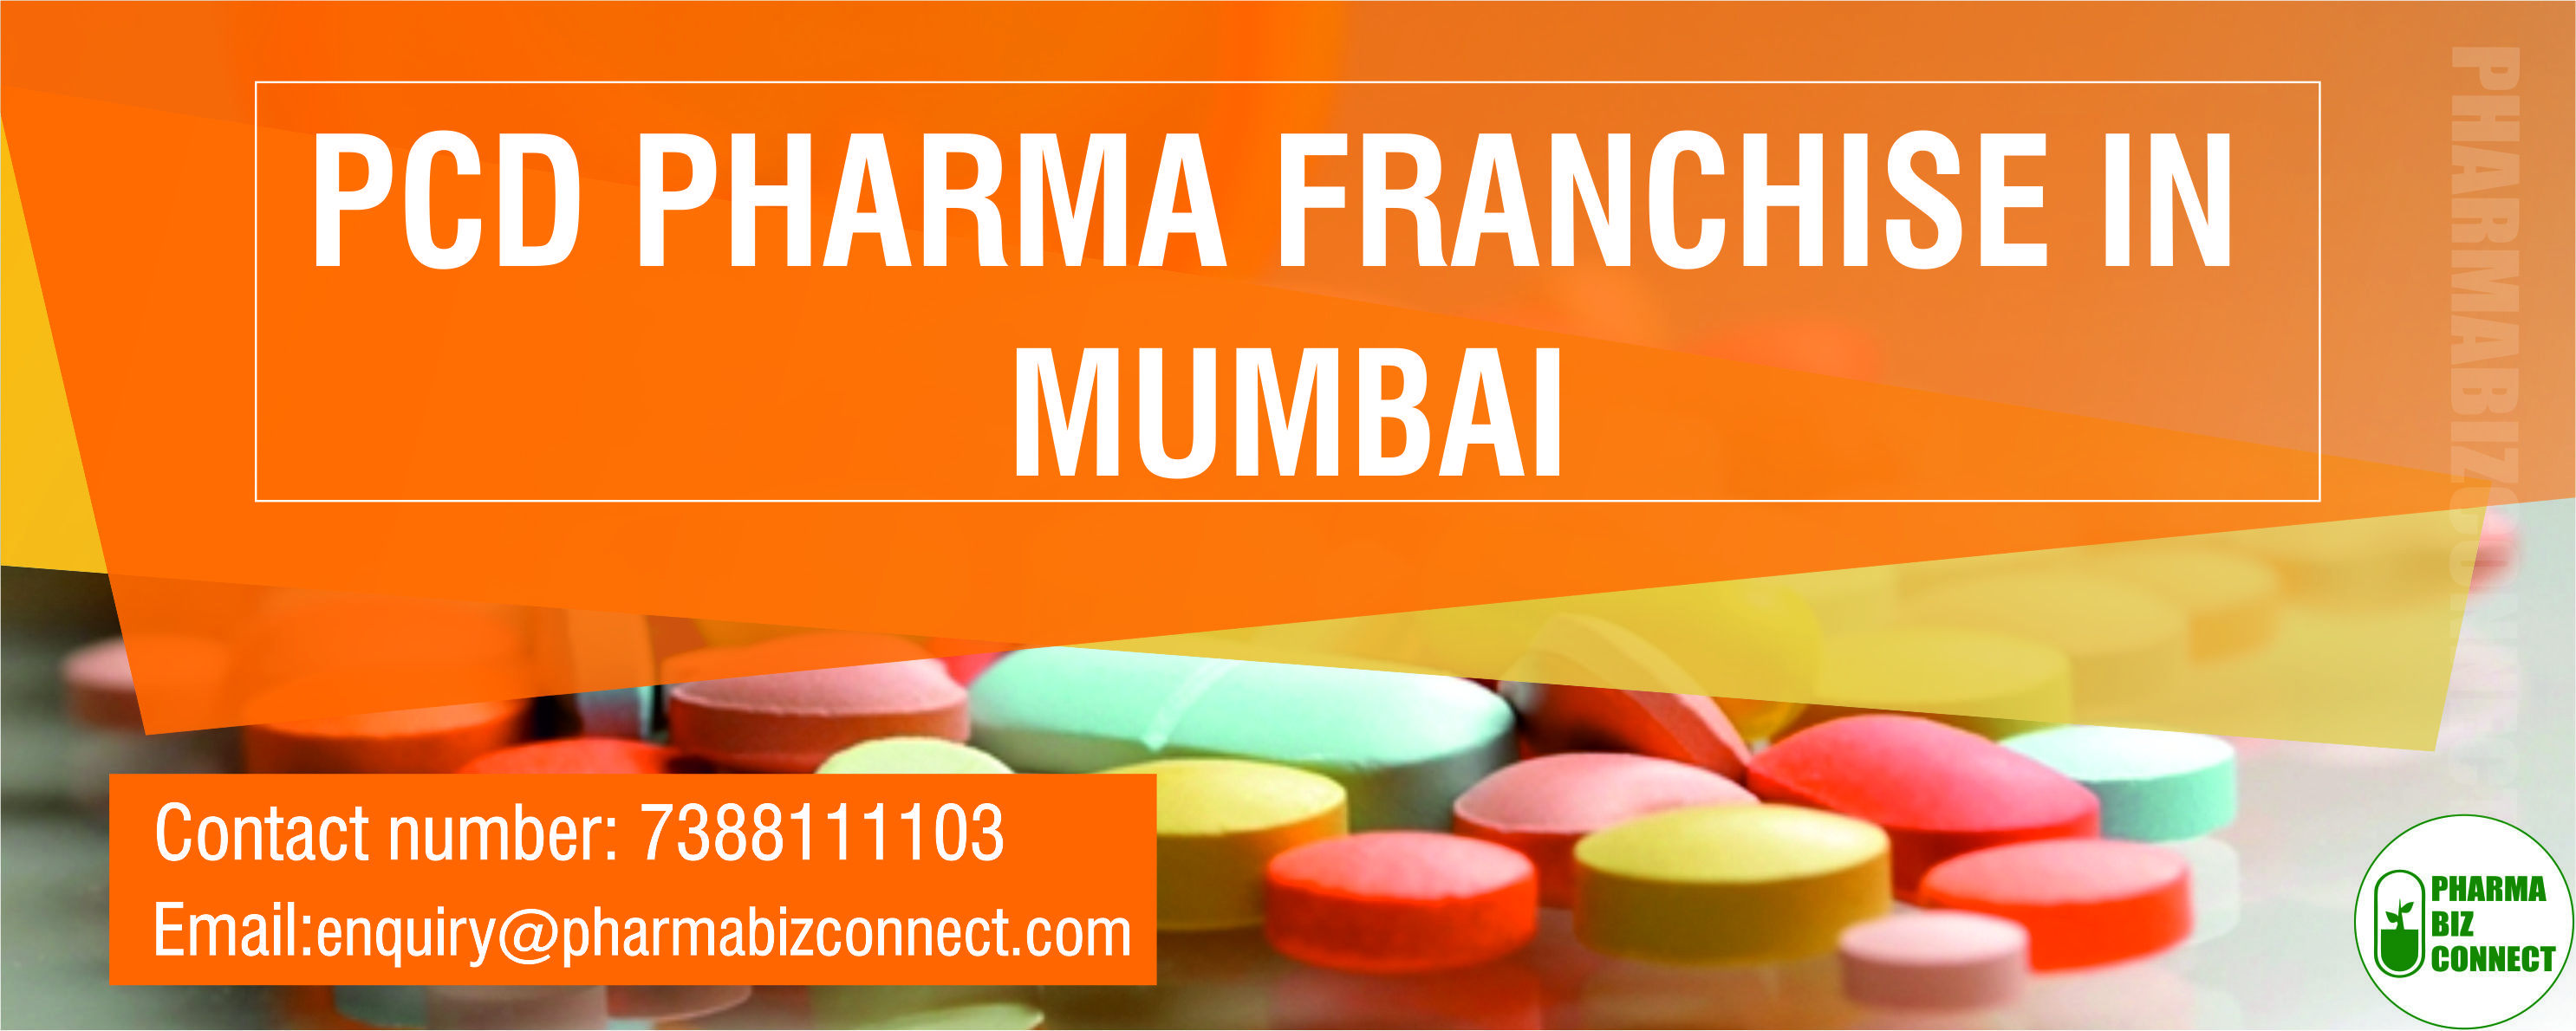 To get the information about PCD pharma Franchise companies